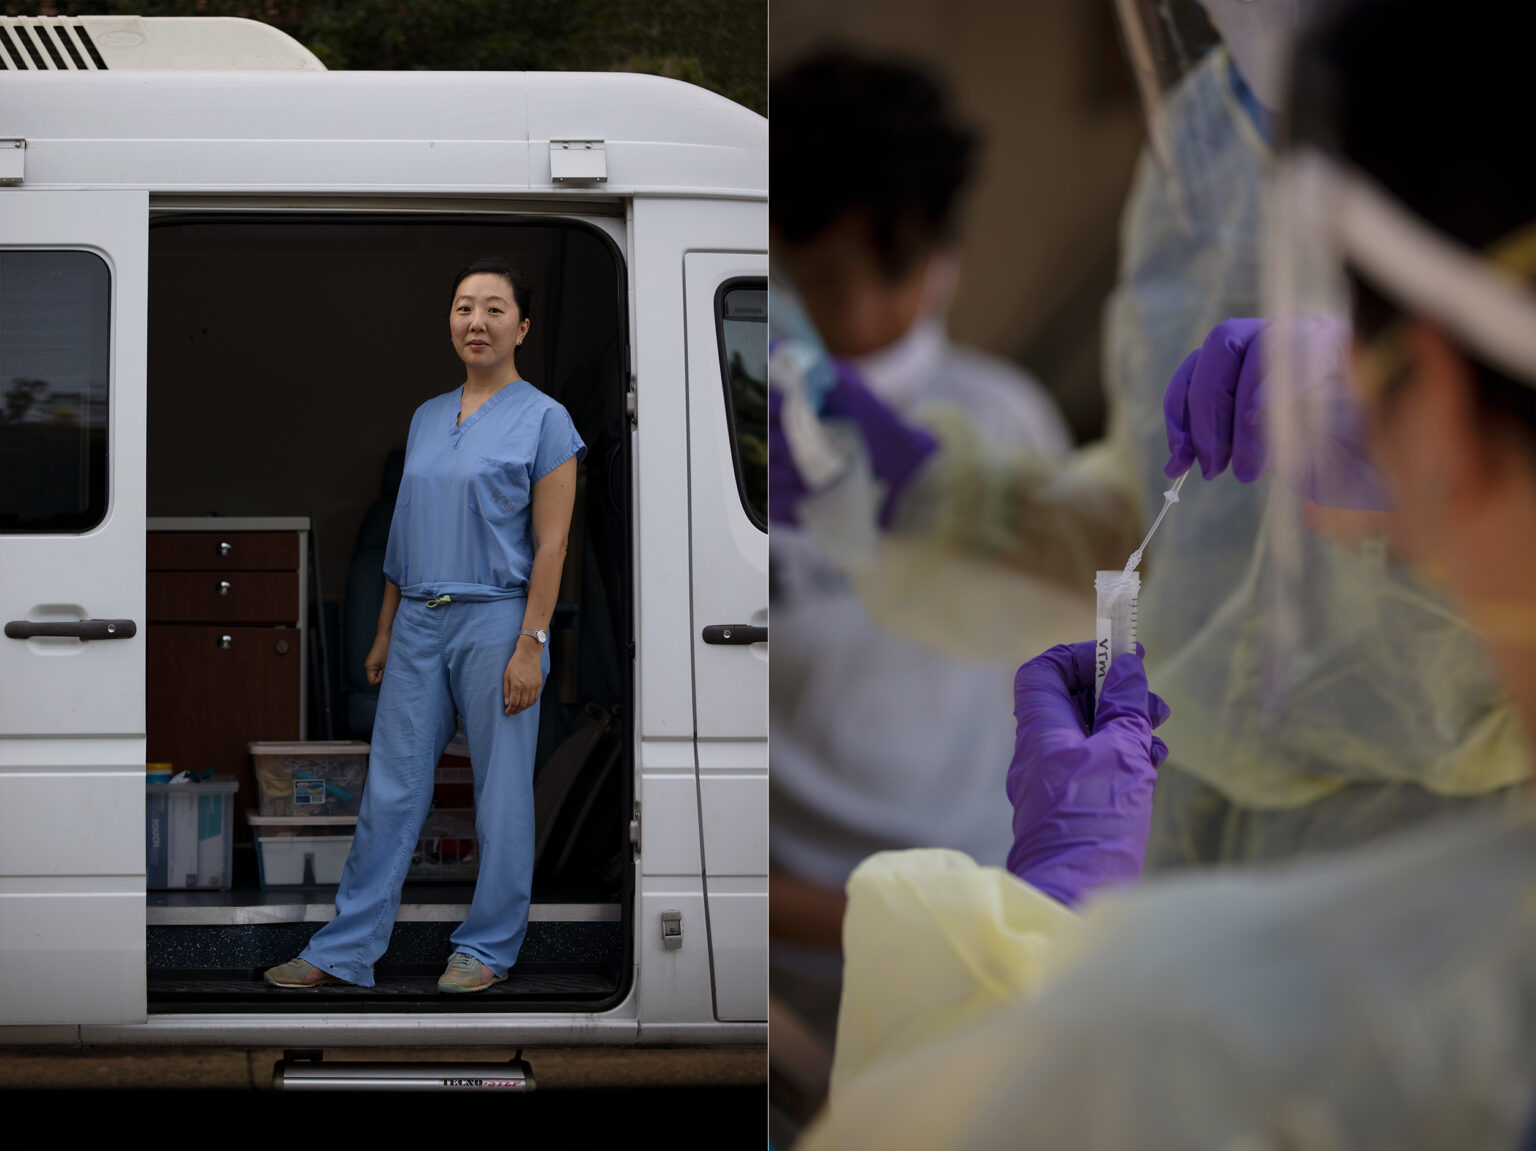 Jessica Lin stands in a van and a researcher places a sample in a vile.